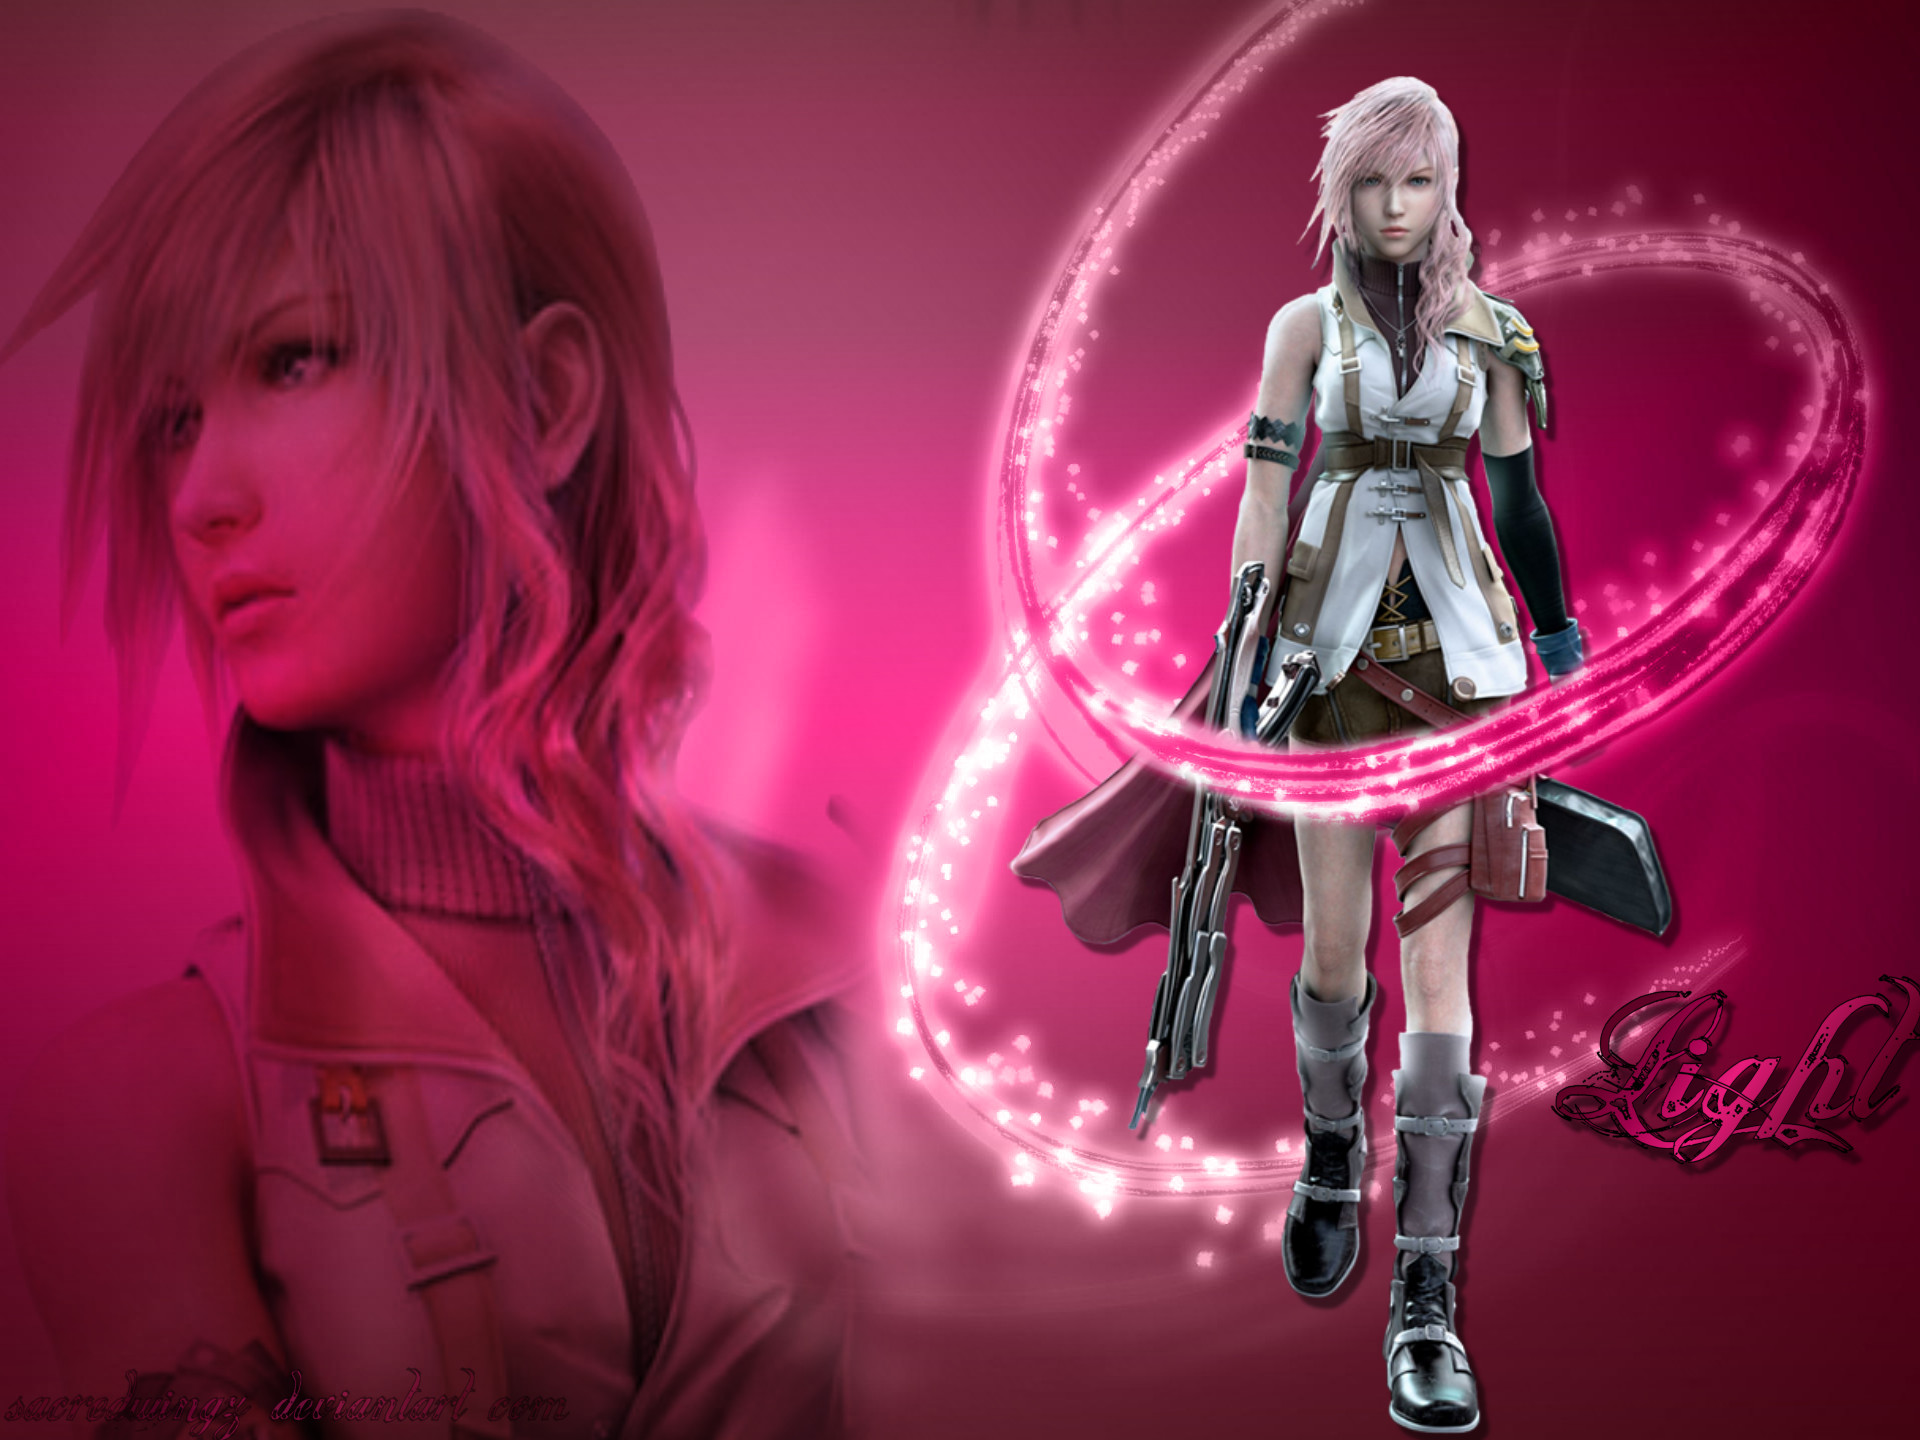 1920x1440 final fantasy 13-2: lighting images lighting backgrounds HD wallpaper and  background photos